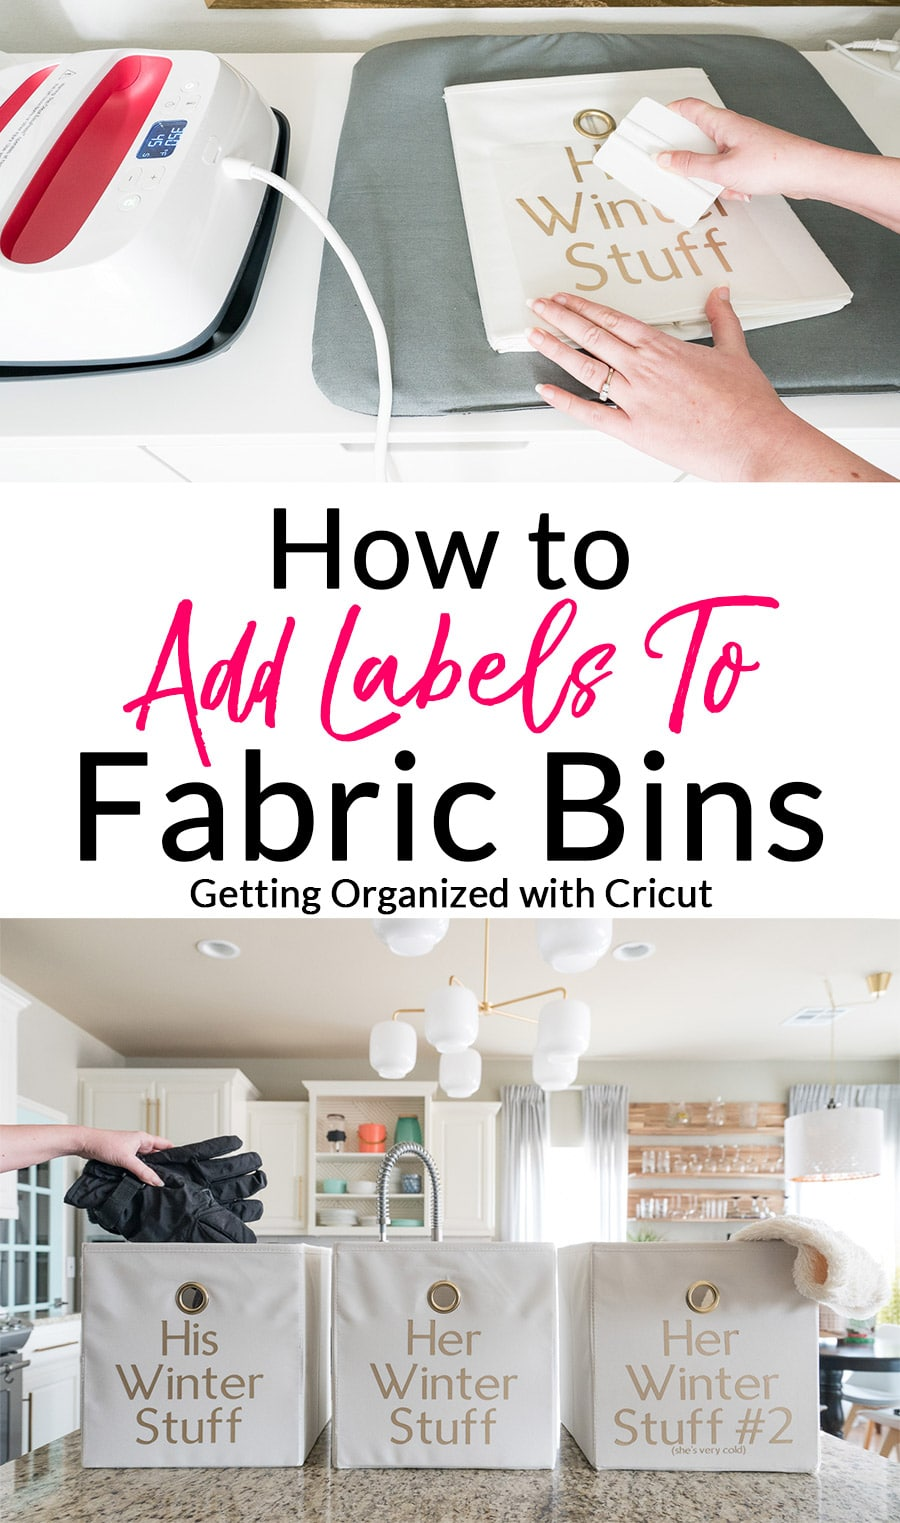 Adding Labels to fabric bins | Cutting iron-on vinyl with Cricut Maker | How to Label Fabric Storage Bins